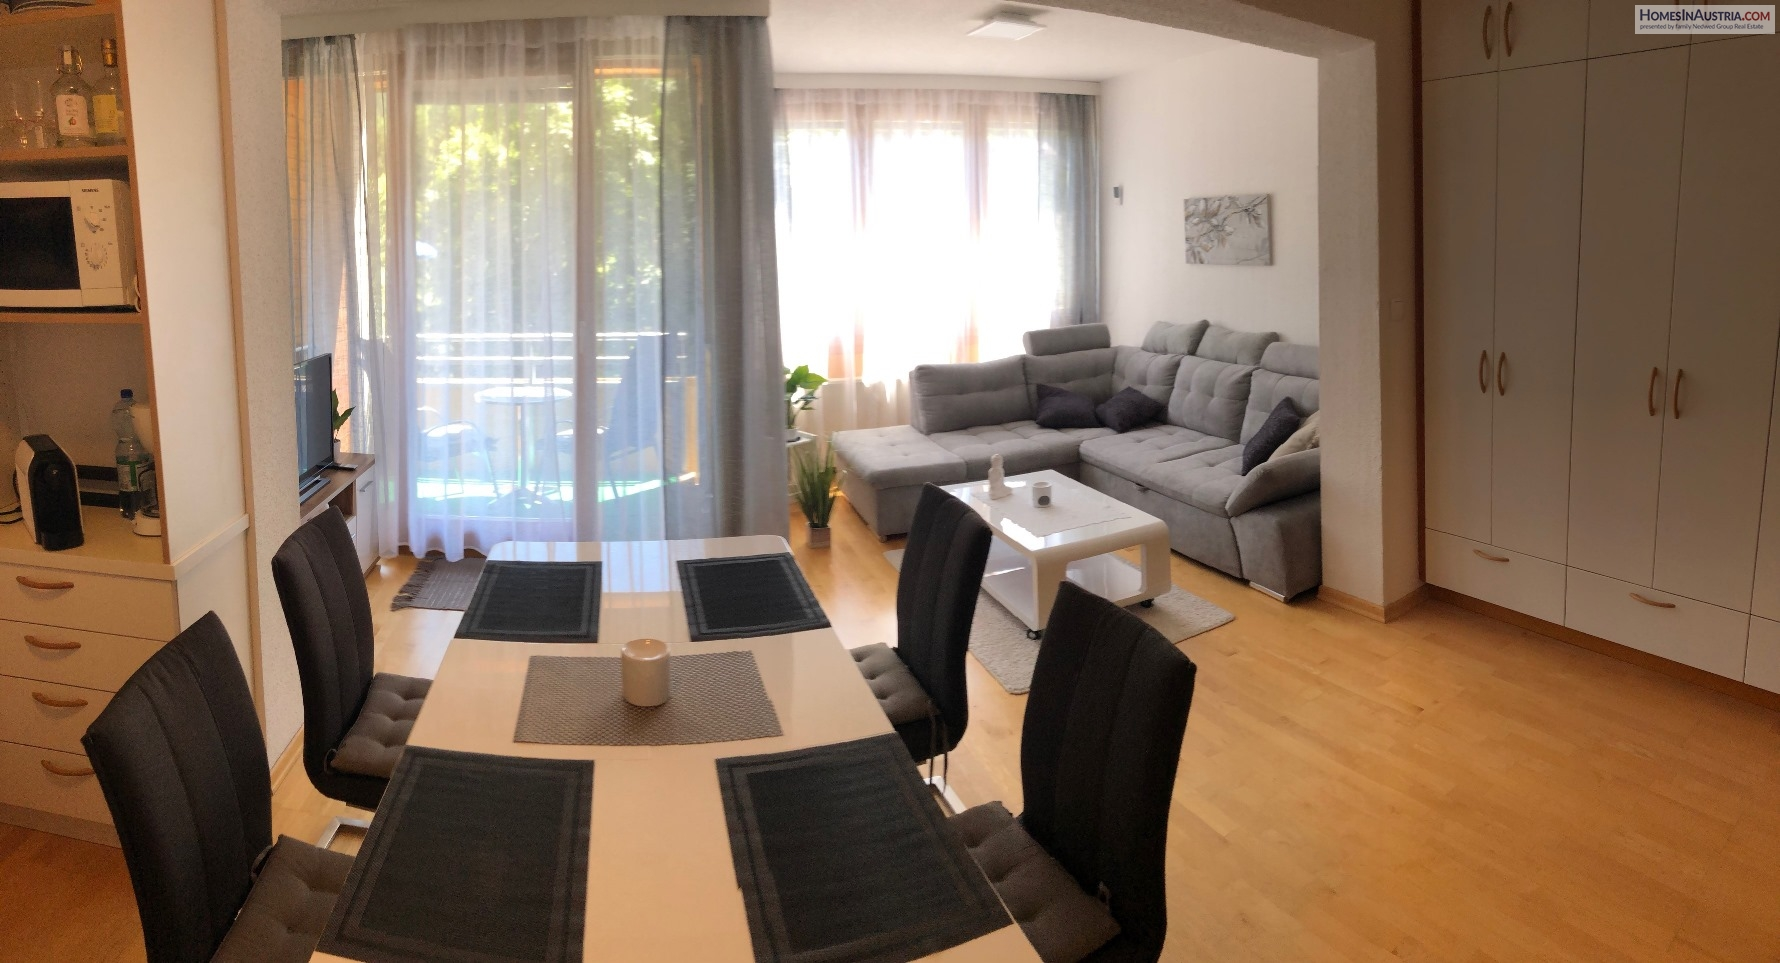 Bad Kleinkirchheim, Carinthia, Apartment approx 56m2 (ZENTRAL 10) sunny, central location, balcony, garage